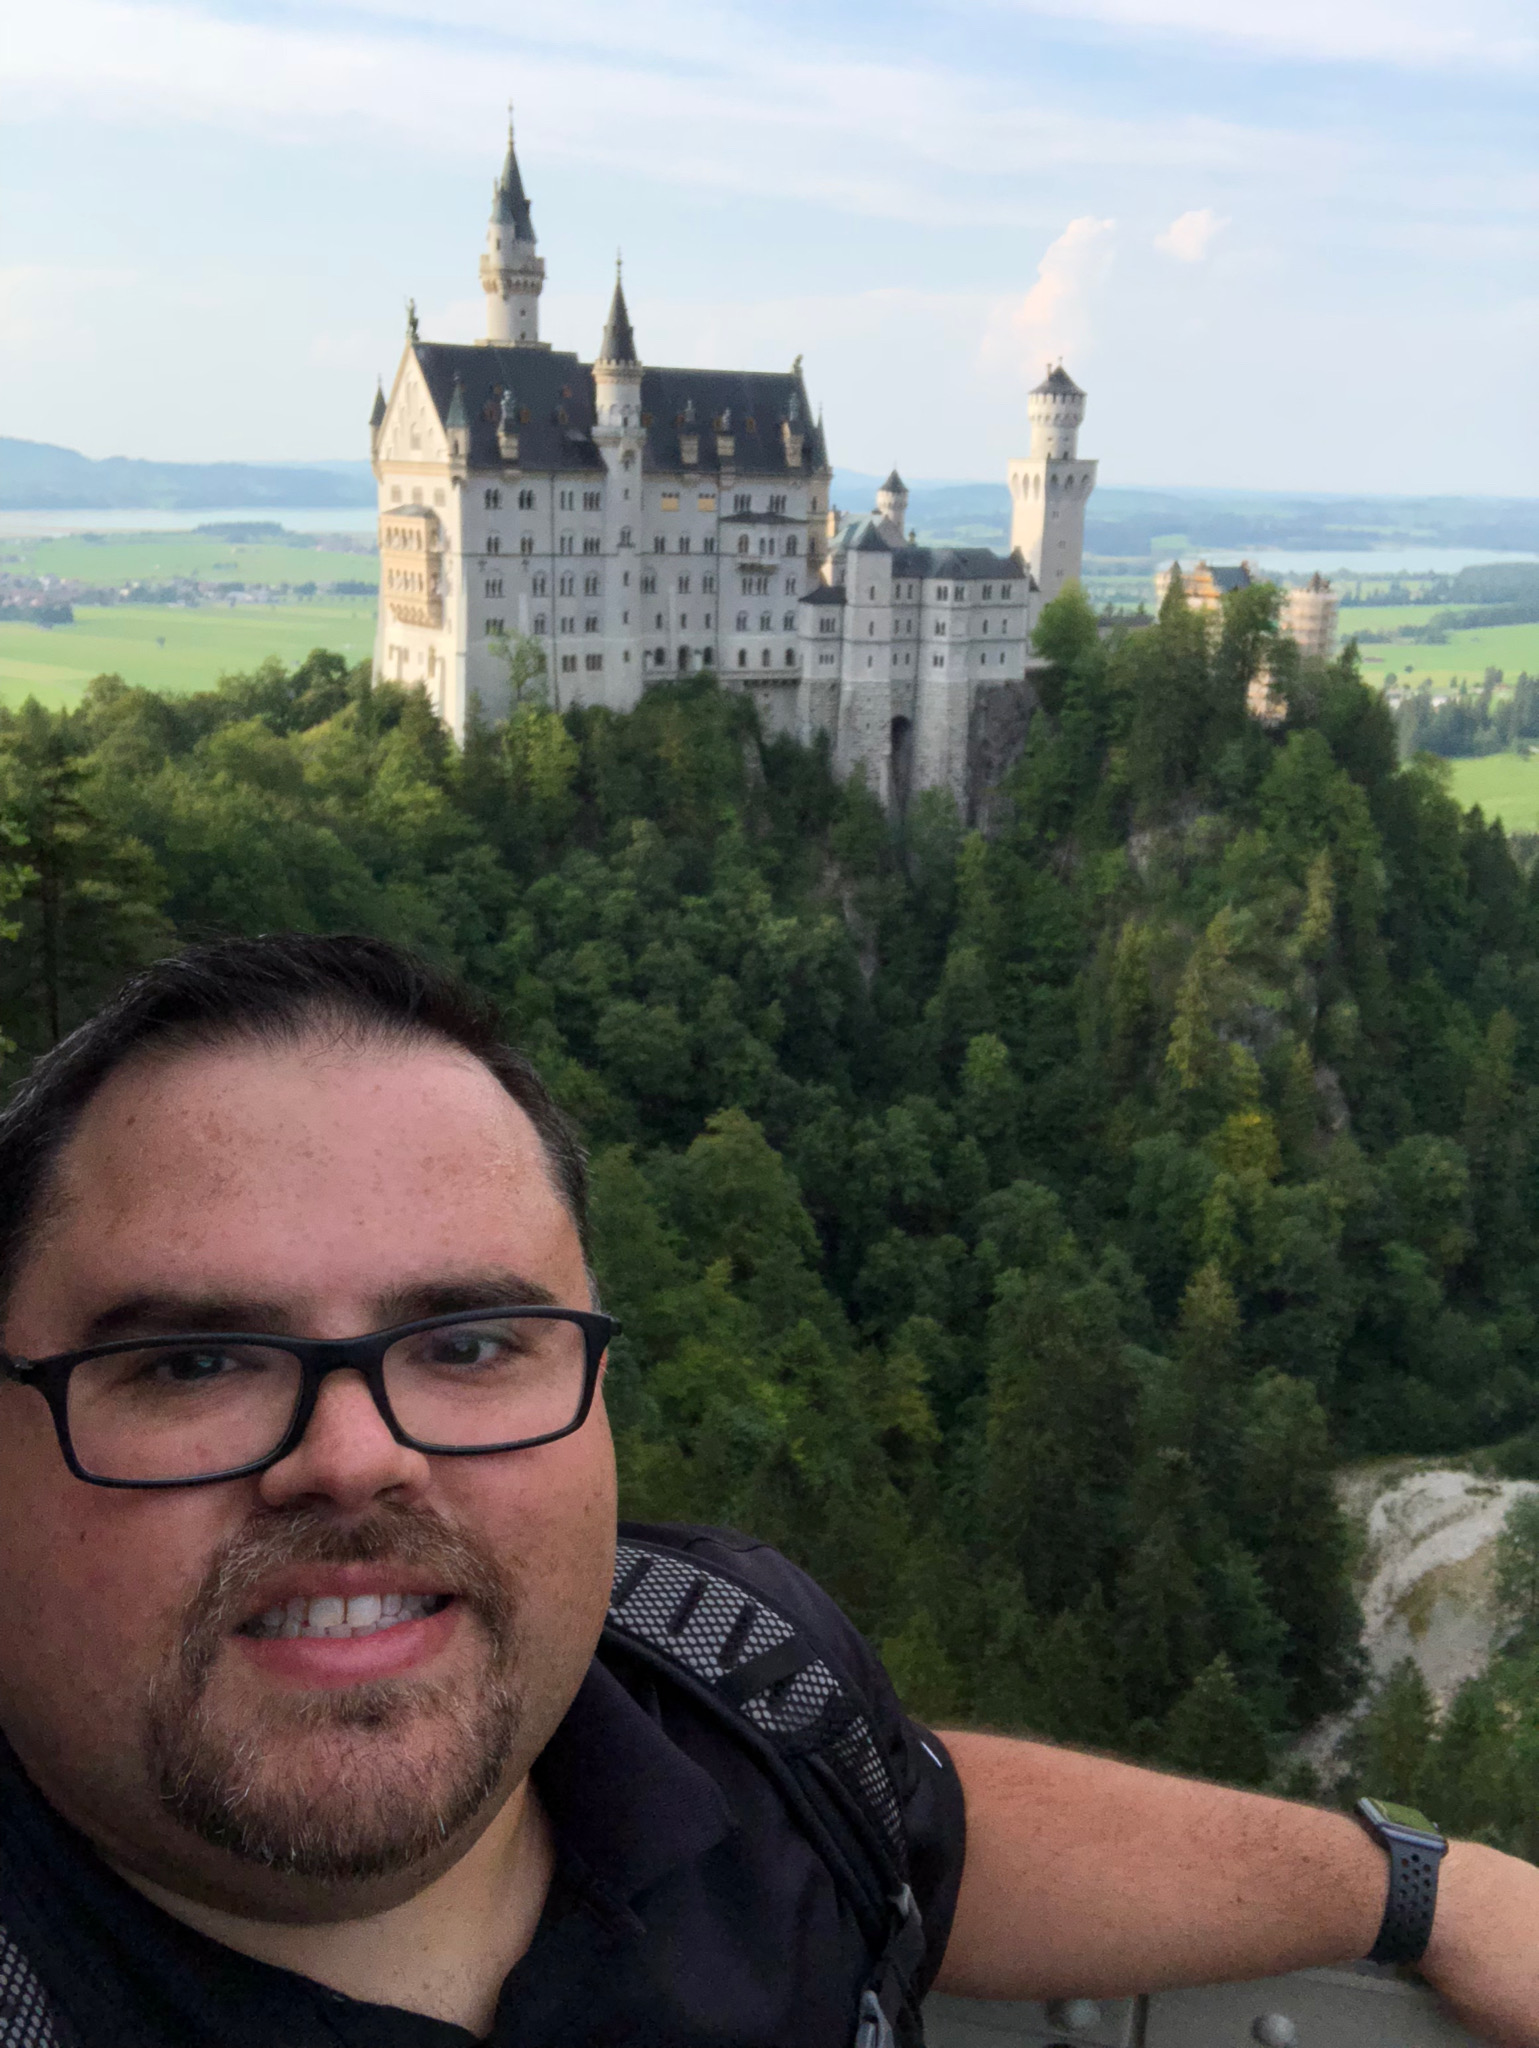 Me and Neuschwanstein Castle